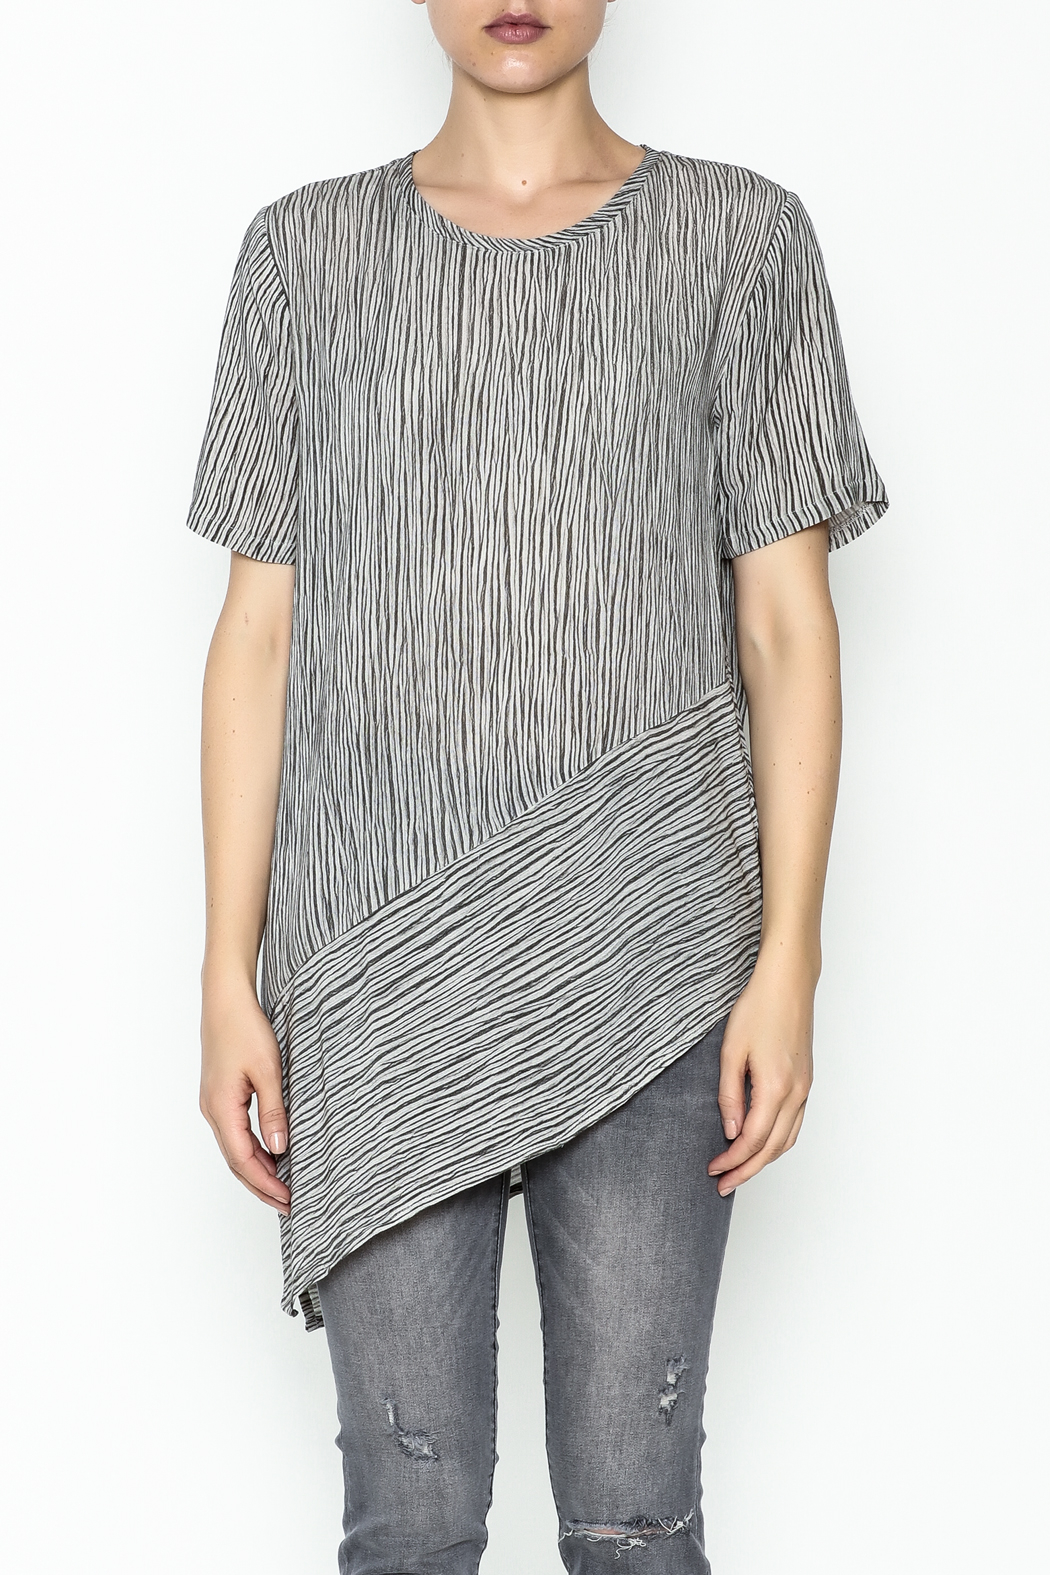 Ronen Chen Assymetrical Top - Front Full Image